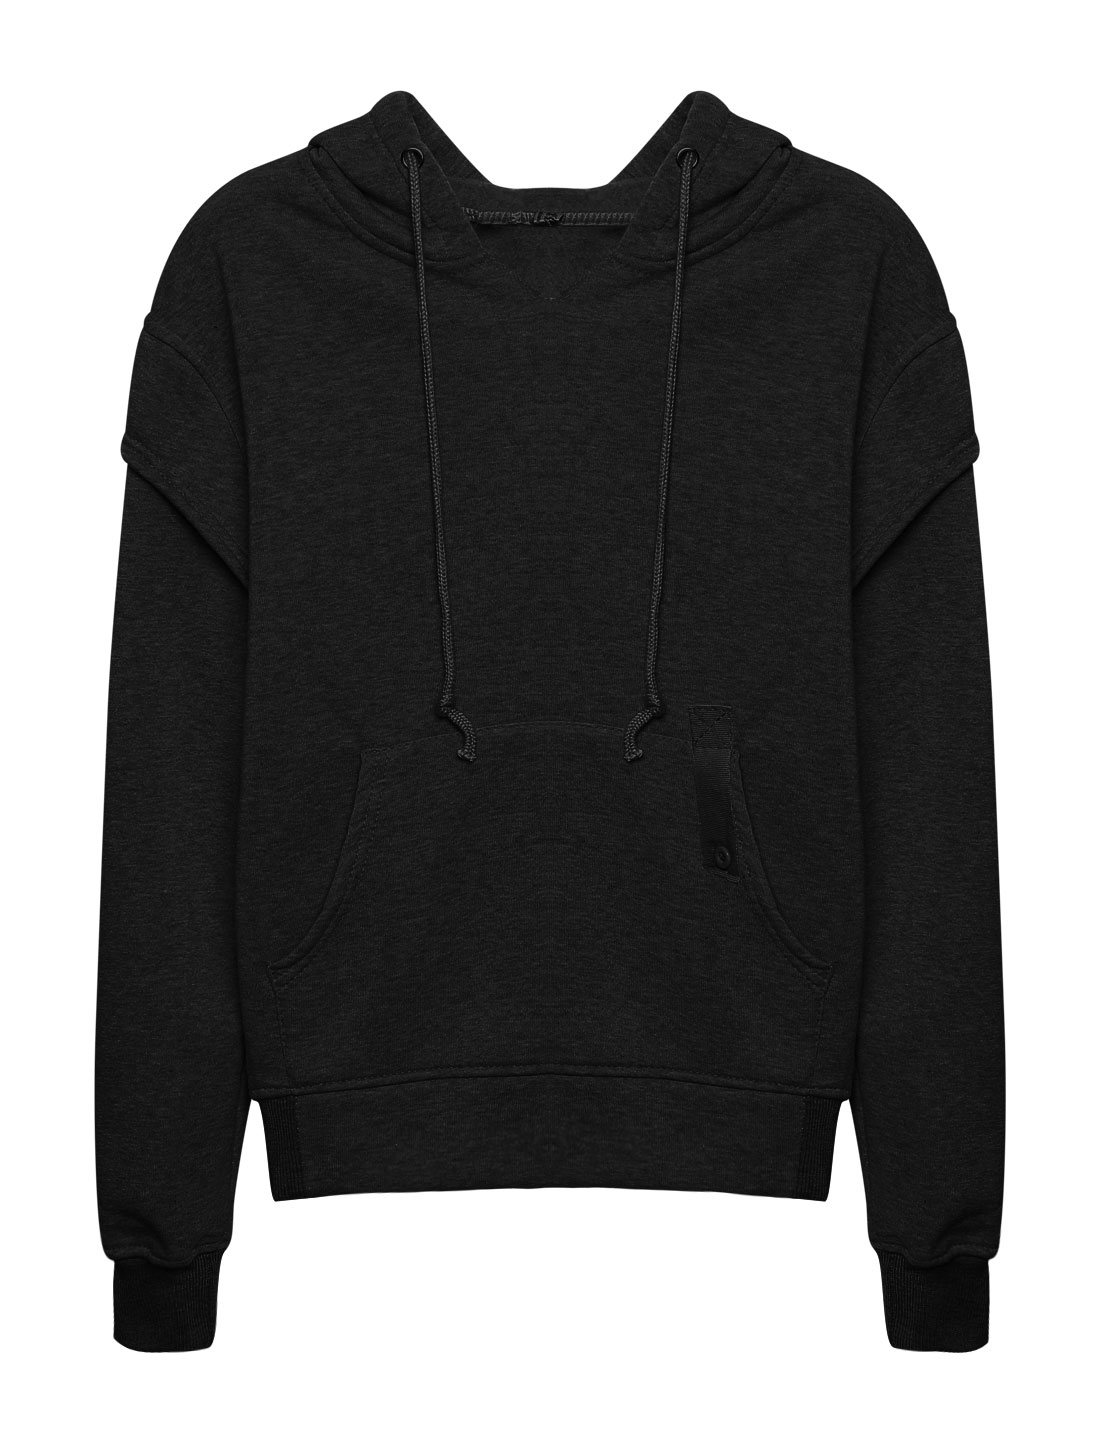 Women Kangaroo Pocket Embroidered Letters Drawstring Hoodie Black XS